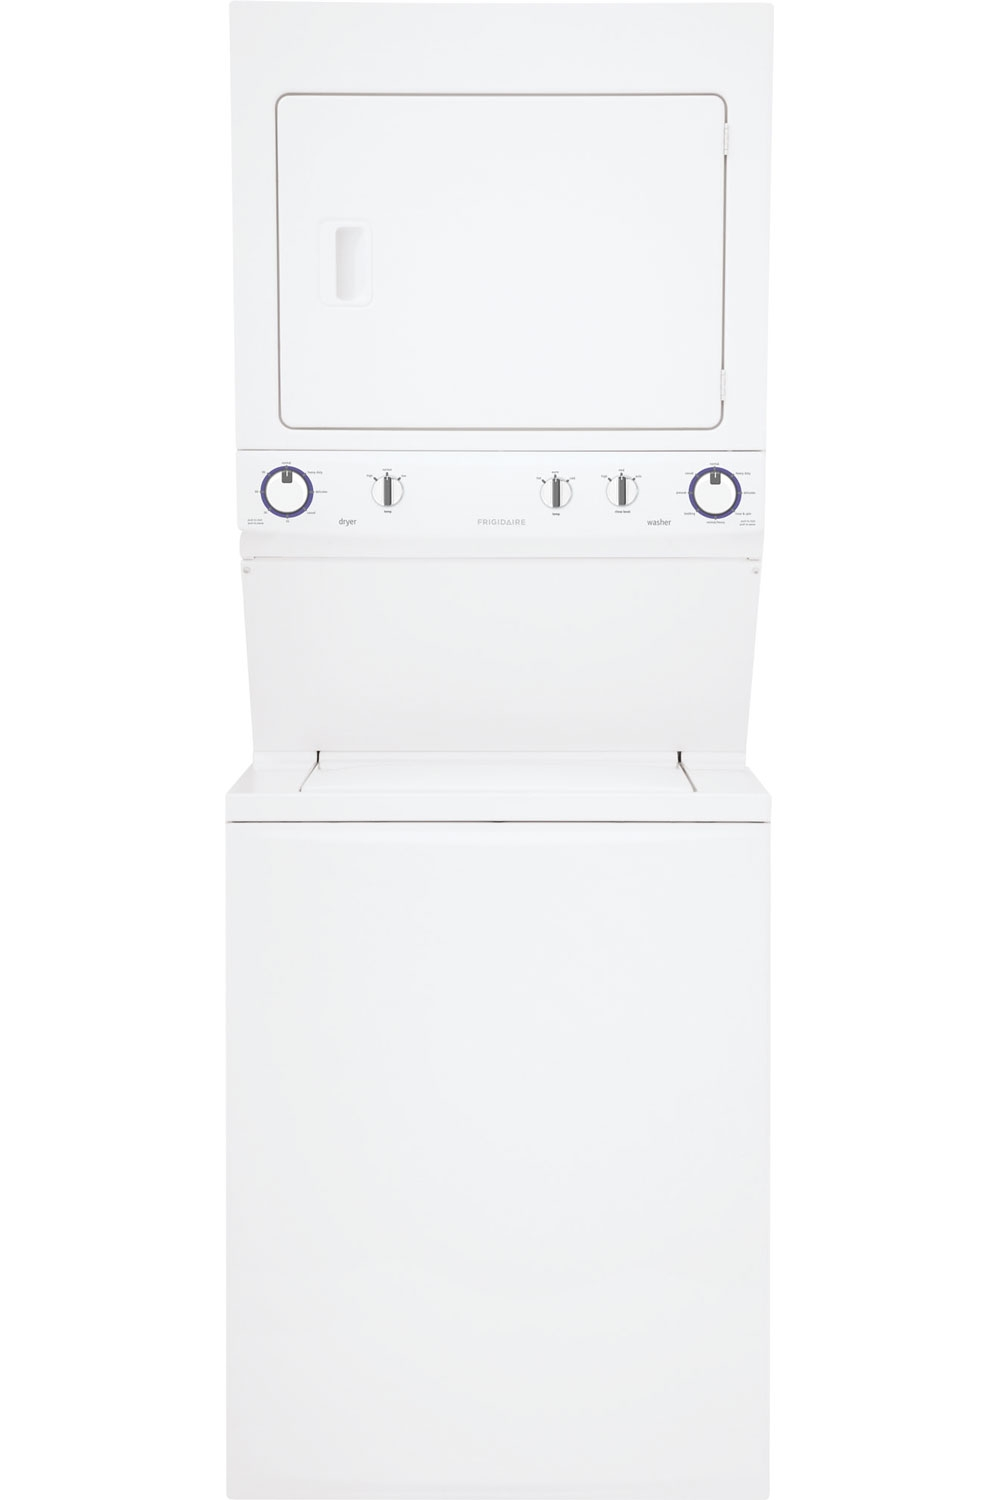 Frigidaire White Washer And Gas Dryer Combo Fflg3911qw